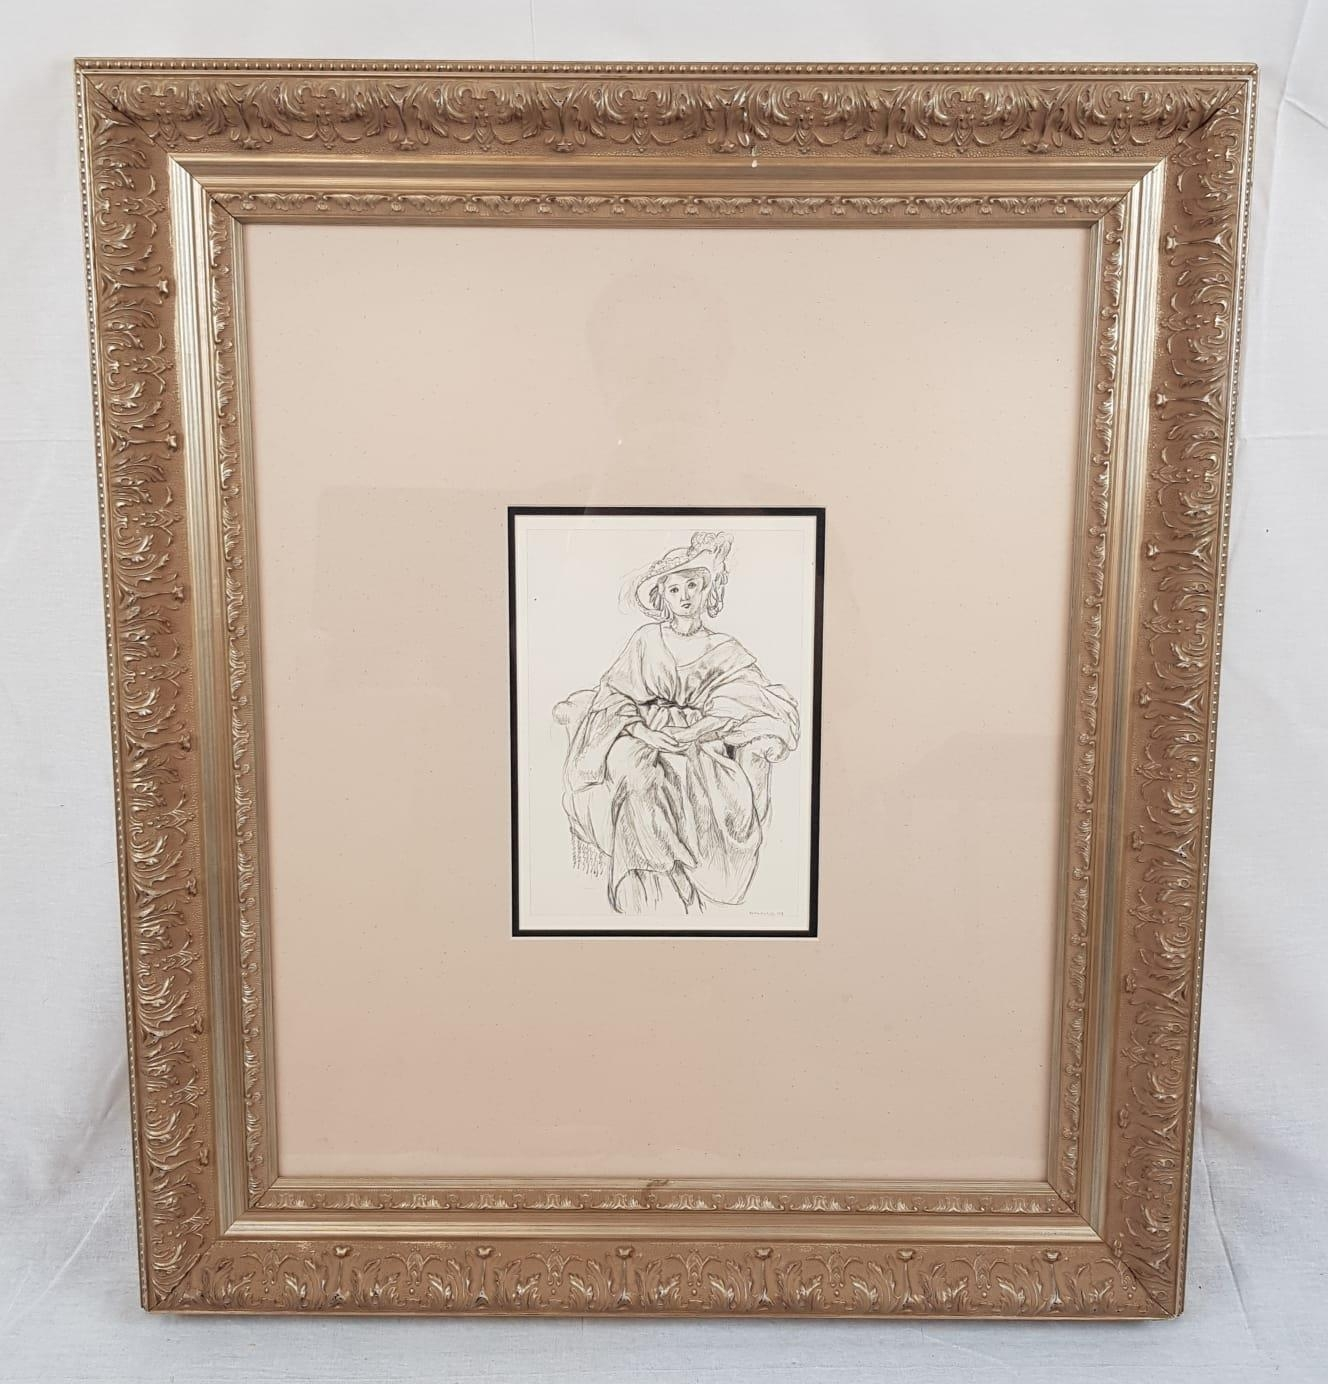 A limited edition Henri Matisse, Cinquente Dessins lithograph (592 of 1000). Printed by Victor